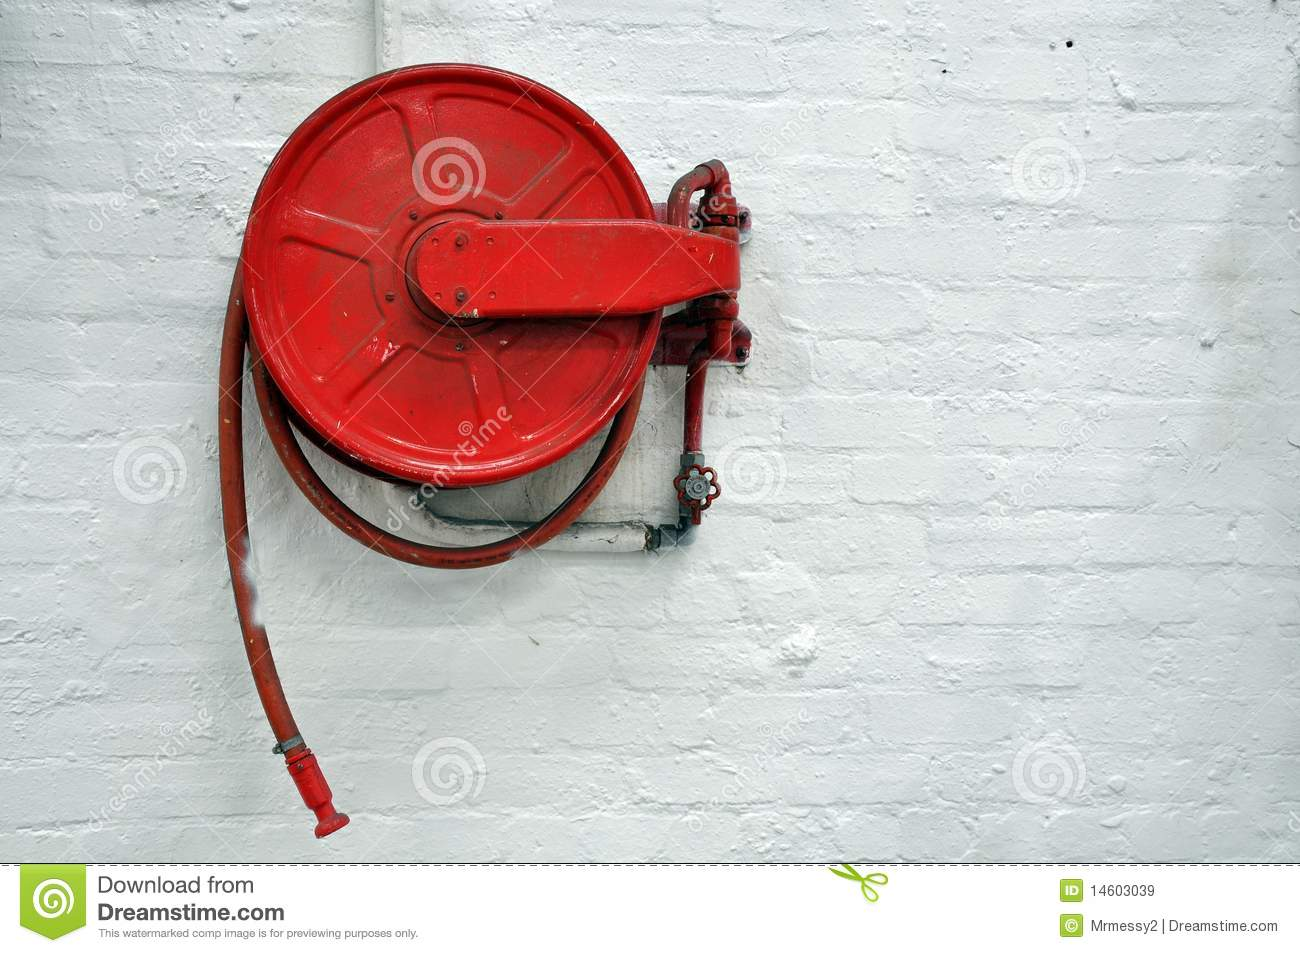 fire hose reel how to use